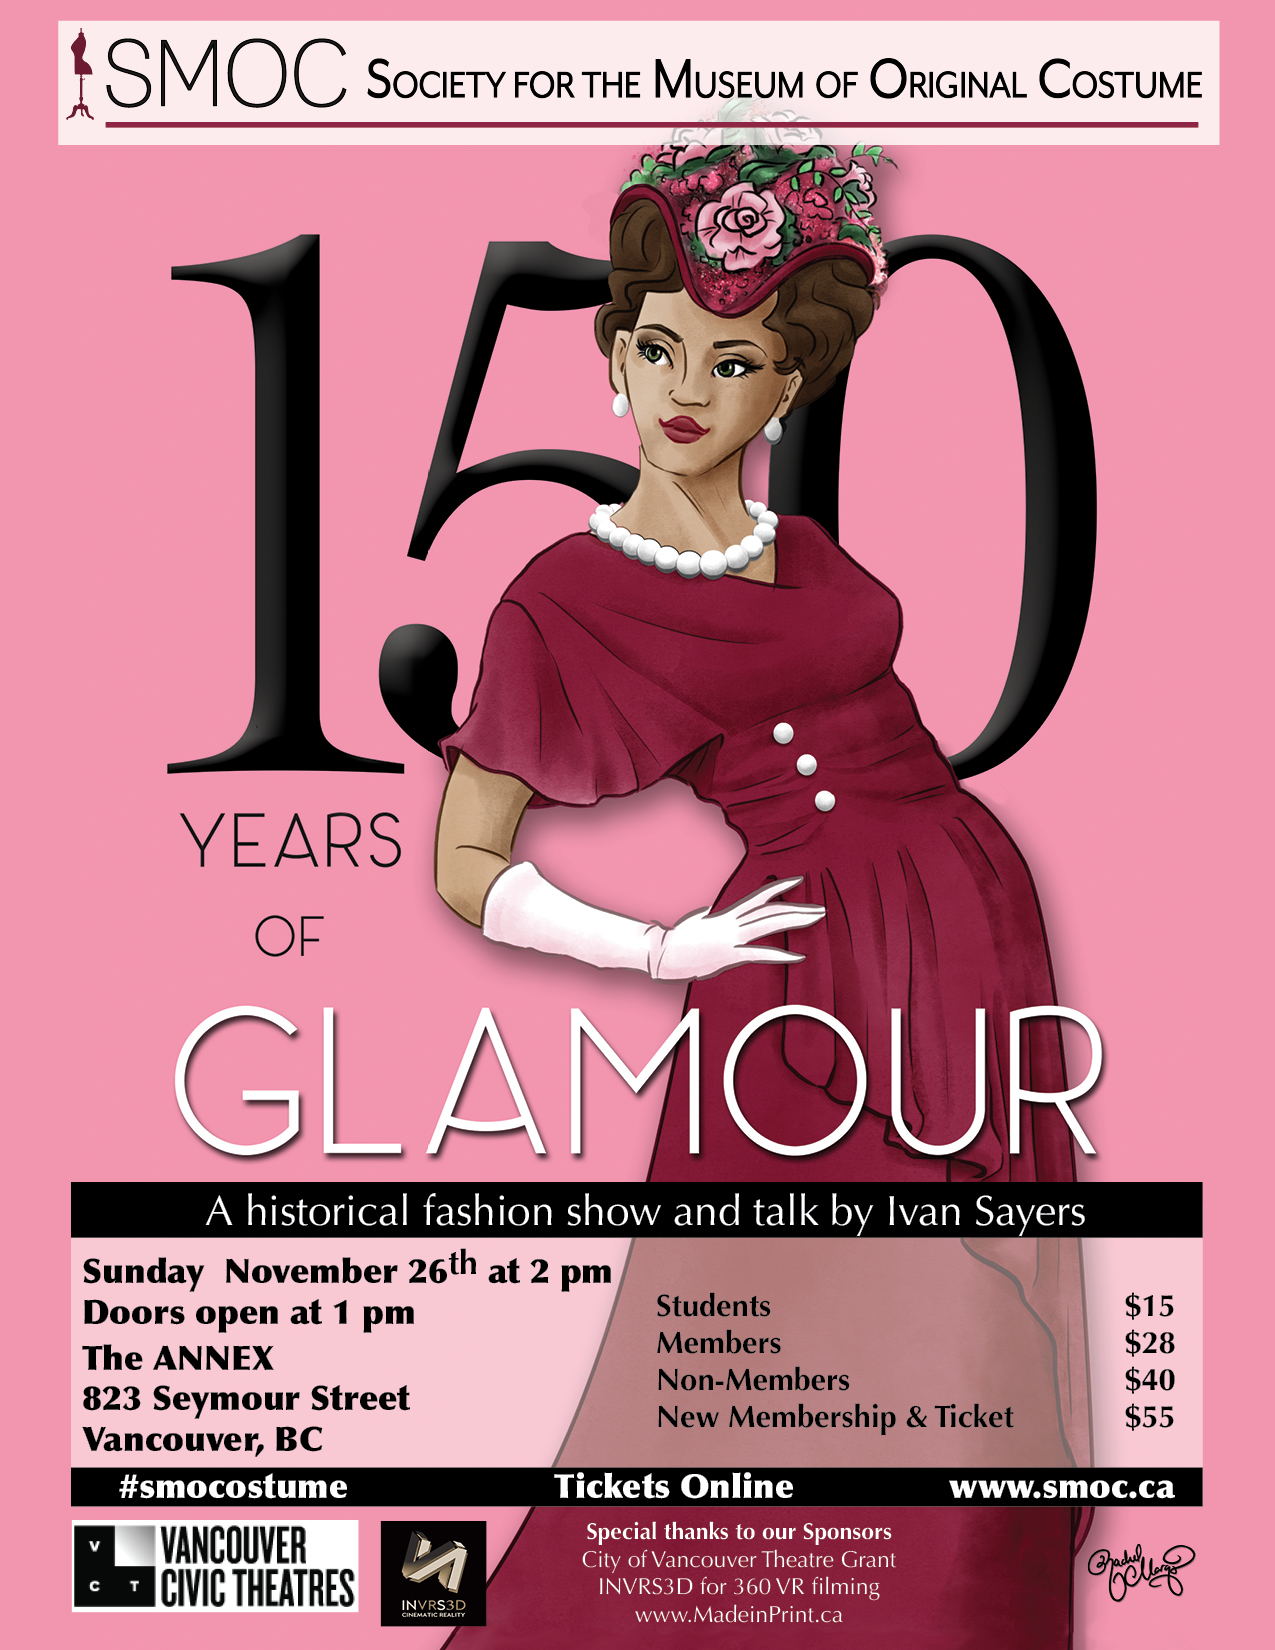 150 Years of Glamour03_web.jpg